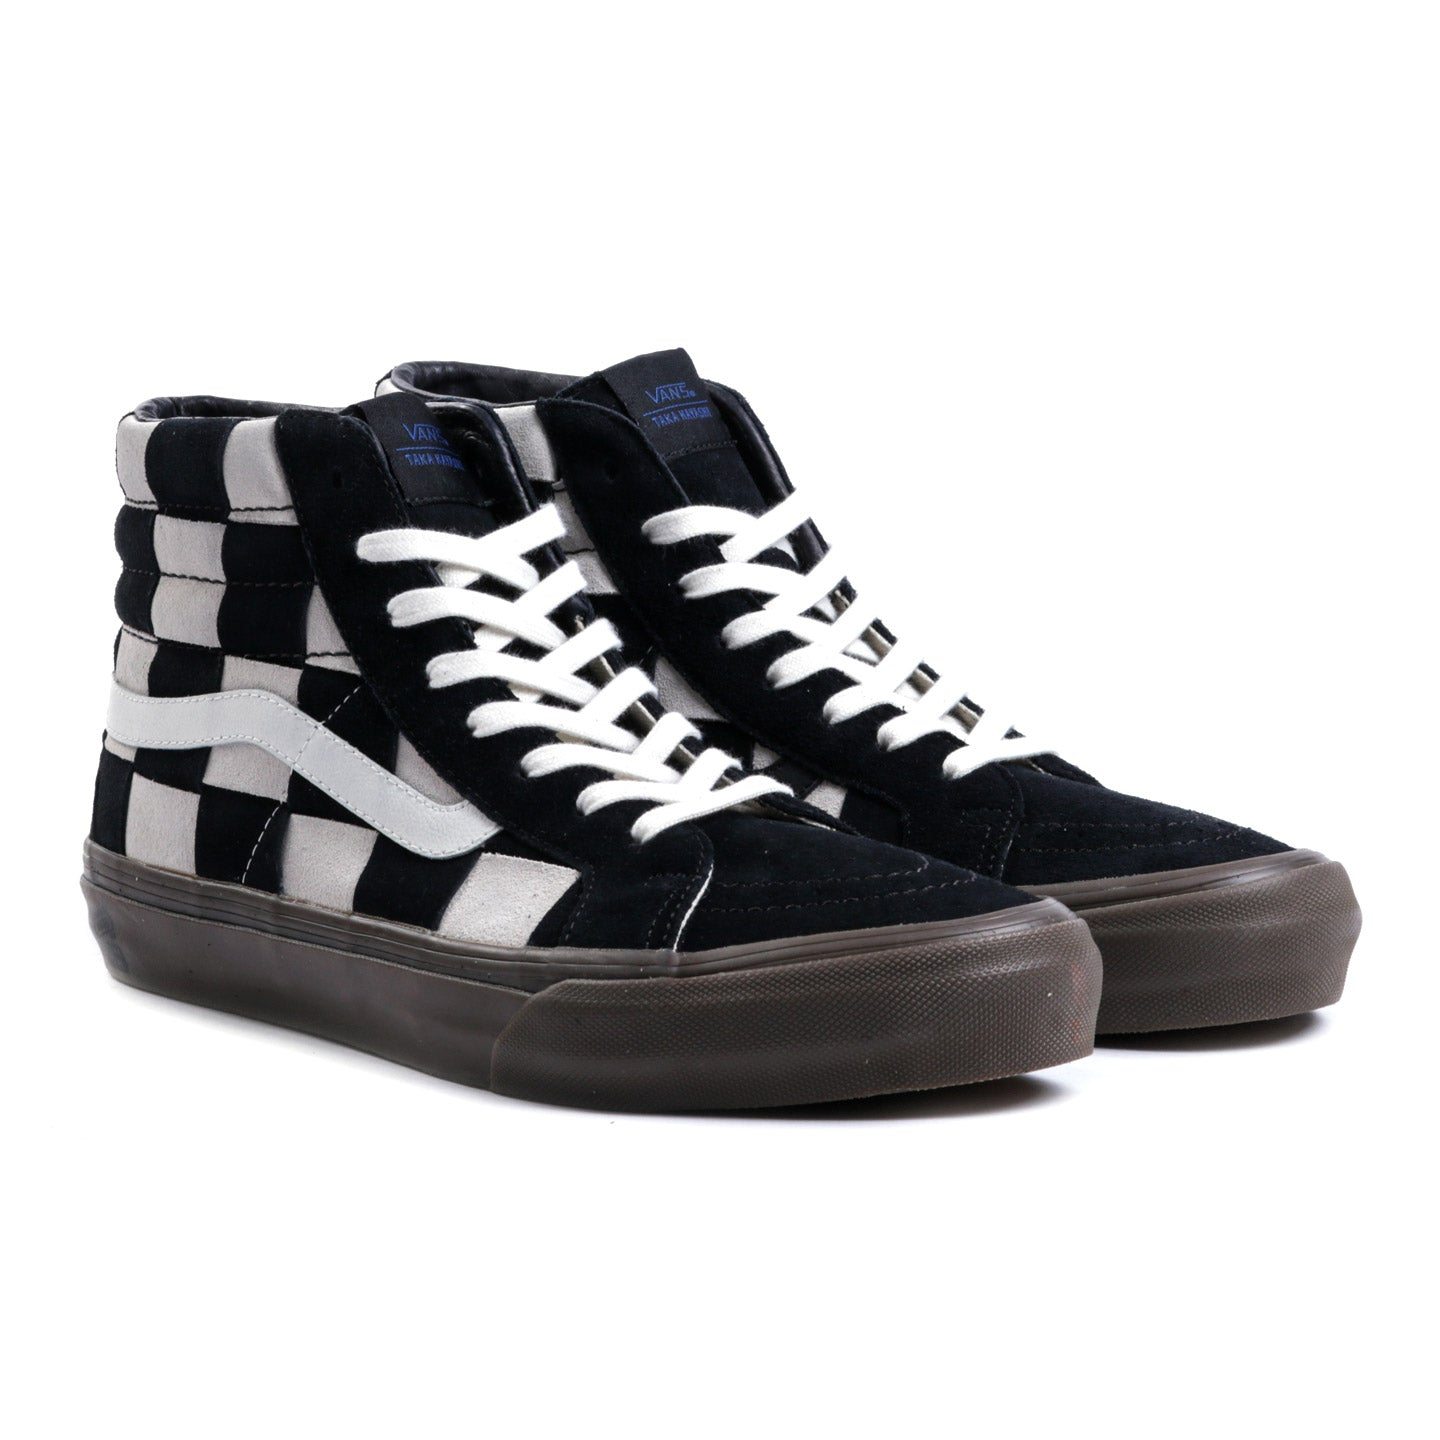 VAULT BY VANS TH SK8-HI LX WOVEN SUEDE CHECKERBOARD / BLACK